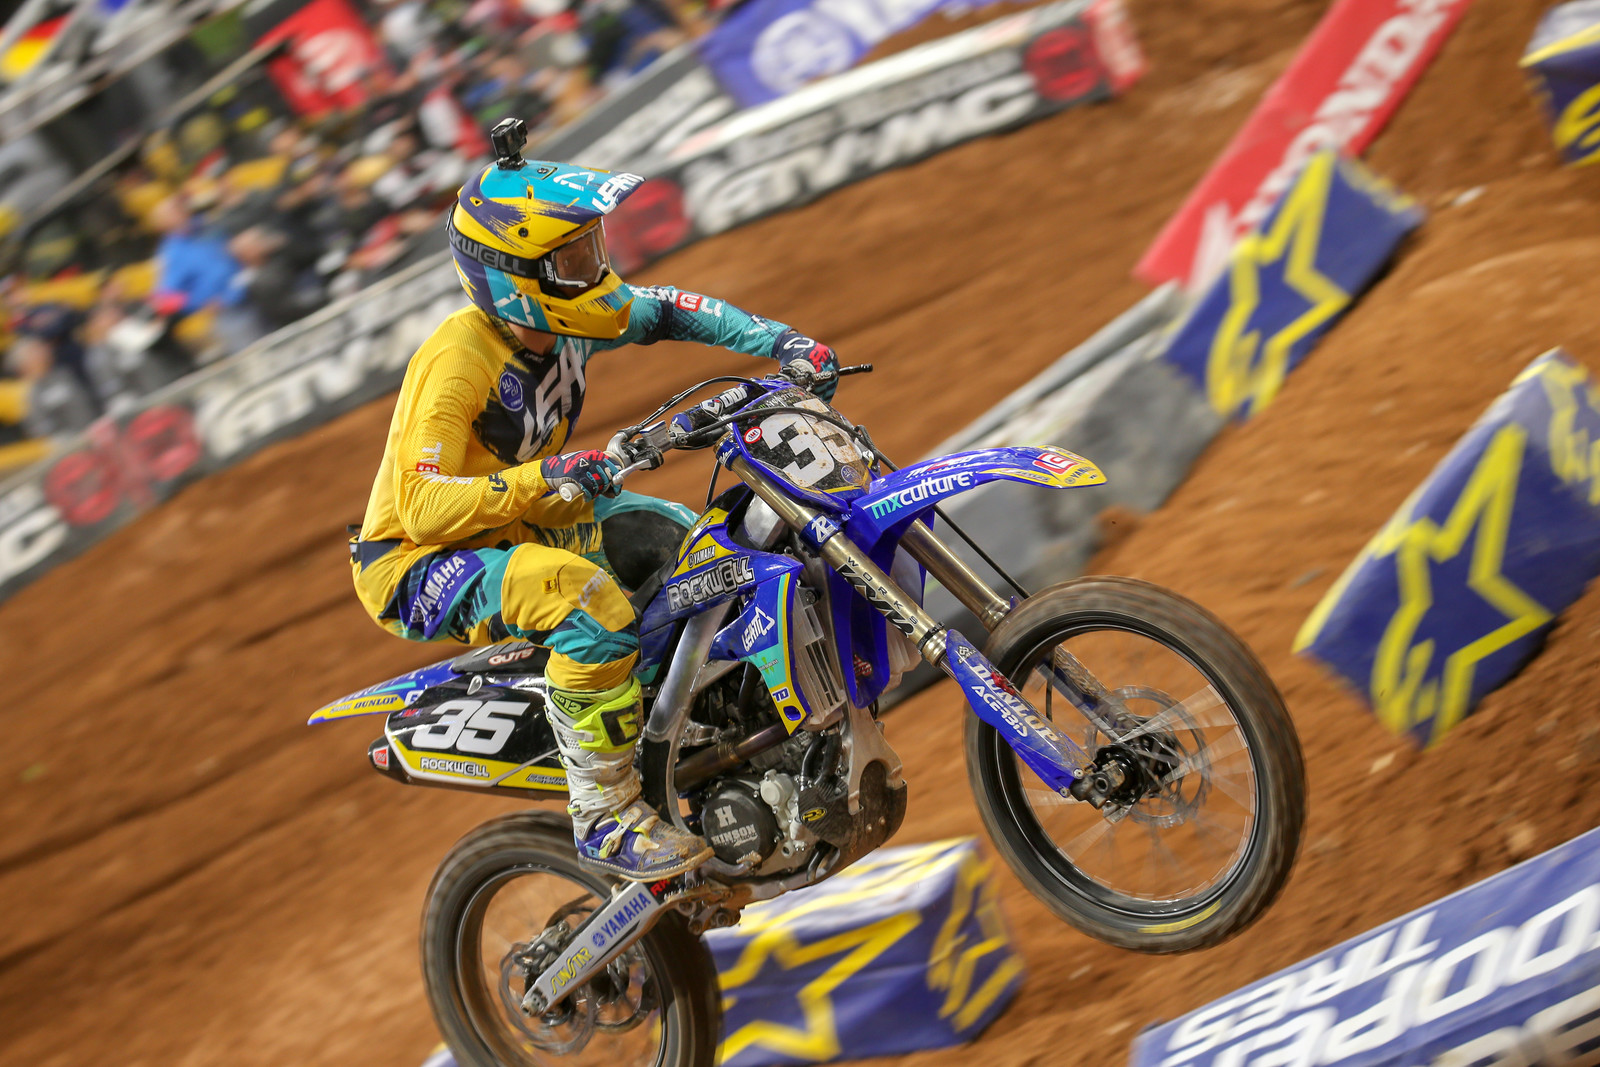 Mitchell Harrison was using one of the new 3.5 helmets last weekend in Atlanta. The Rockwell strap on the Leatt goggles? Your guess is as good as ours.